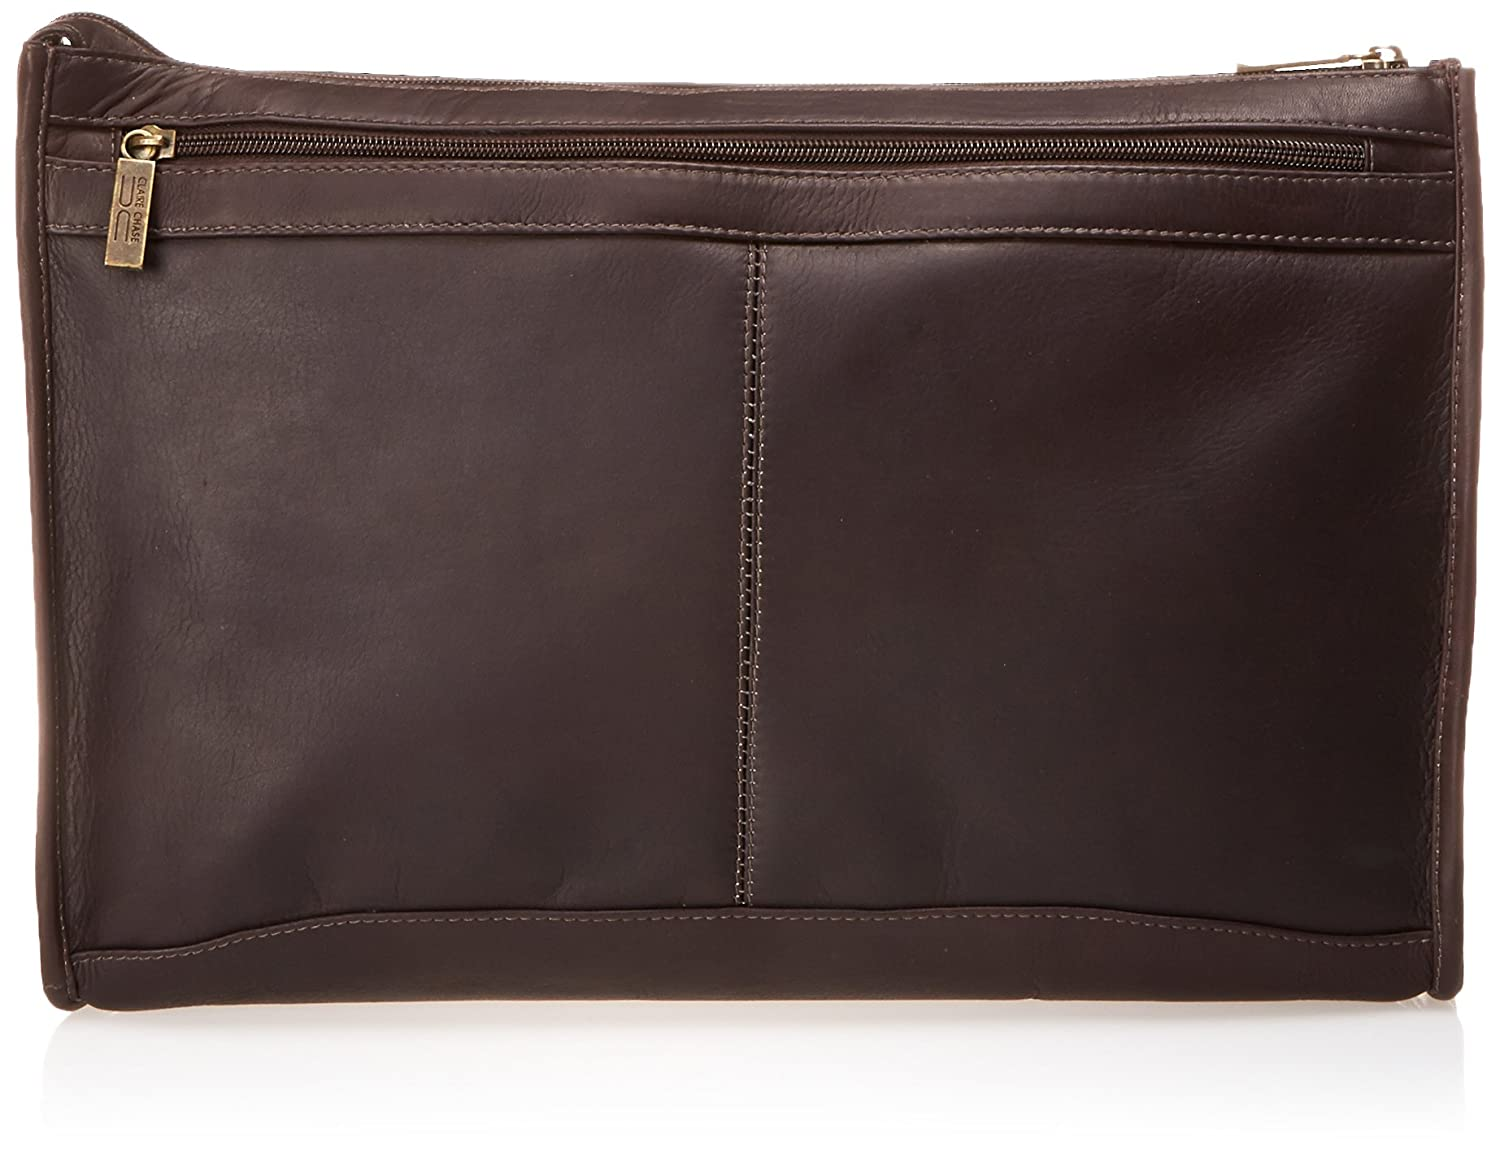 Claire Chase Zippered Folio Pouch, Cafe, One Size